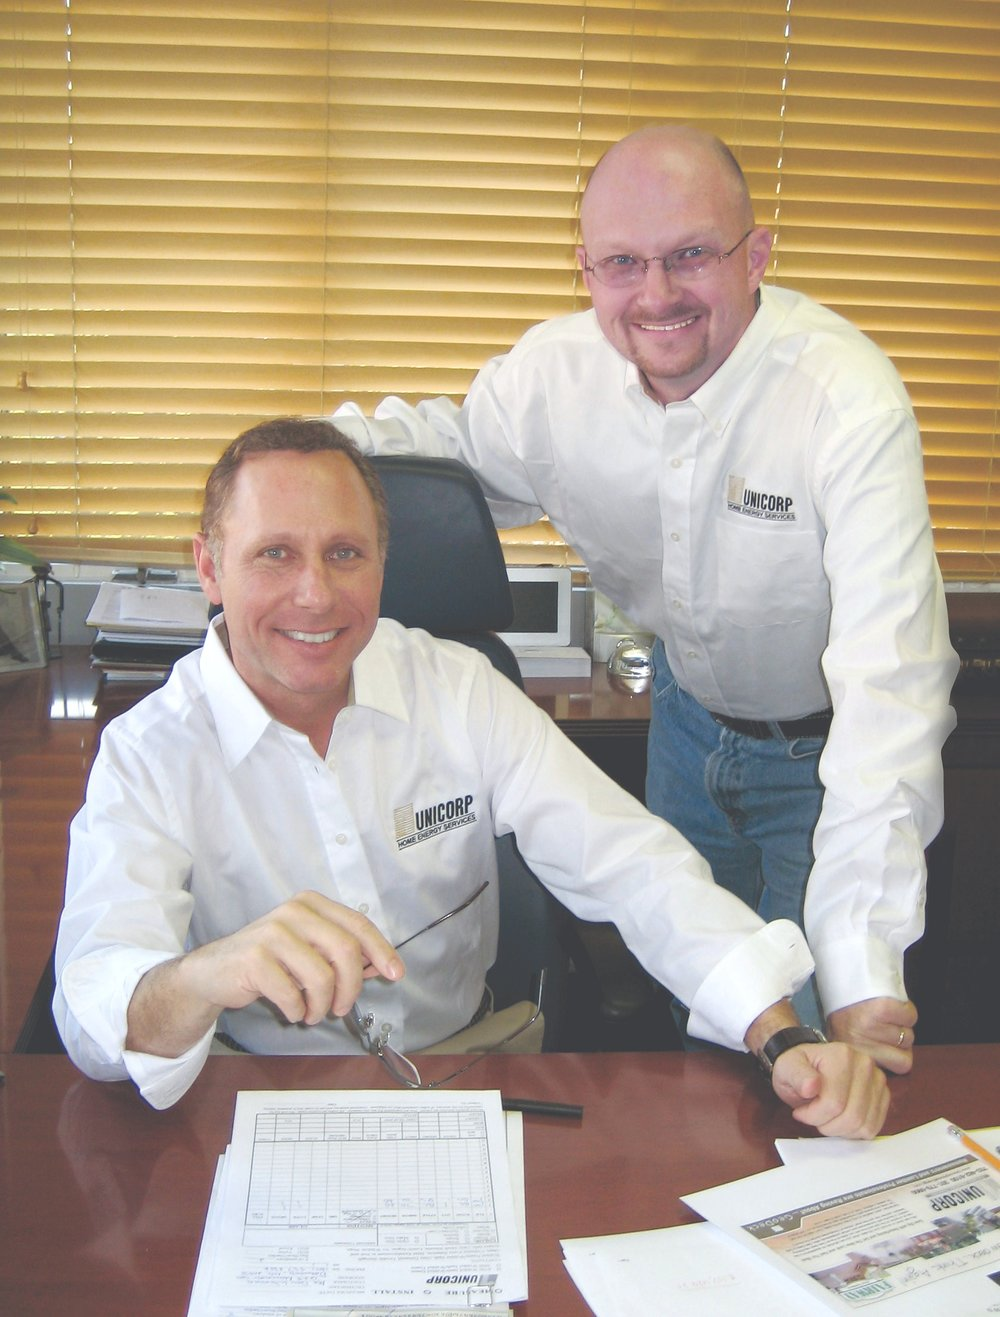 President Brian Weil (Left) and Vice-President David Rohrer (Right)